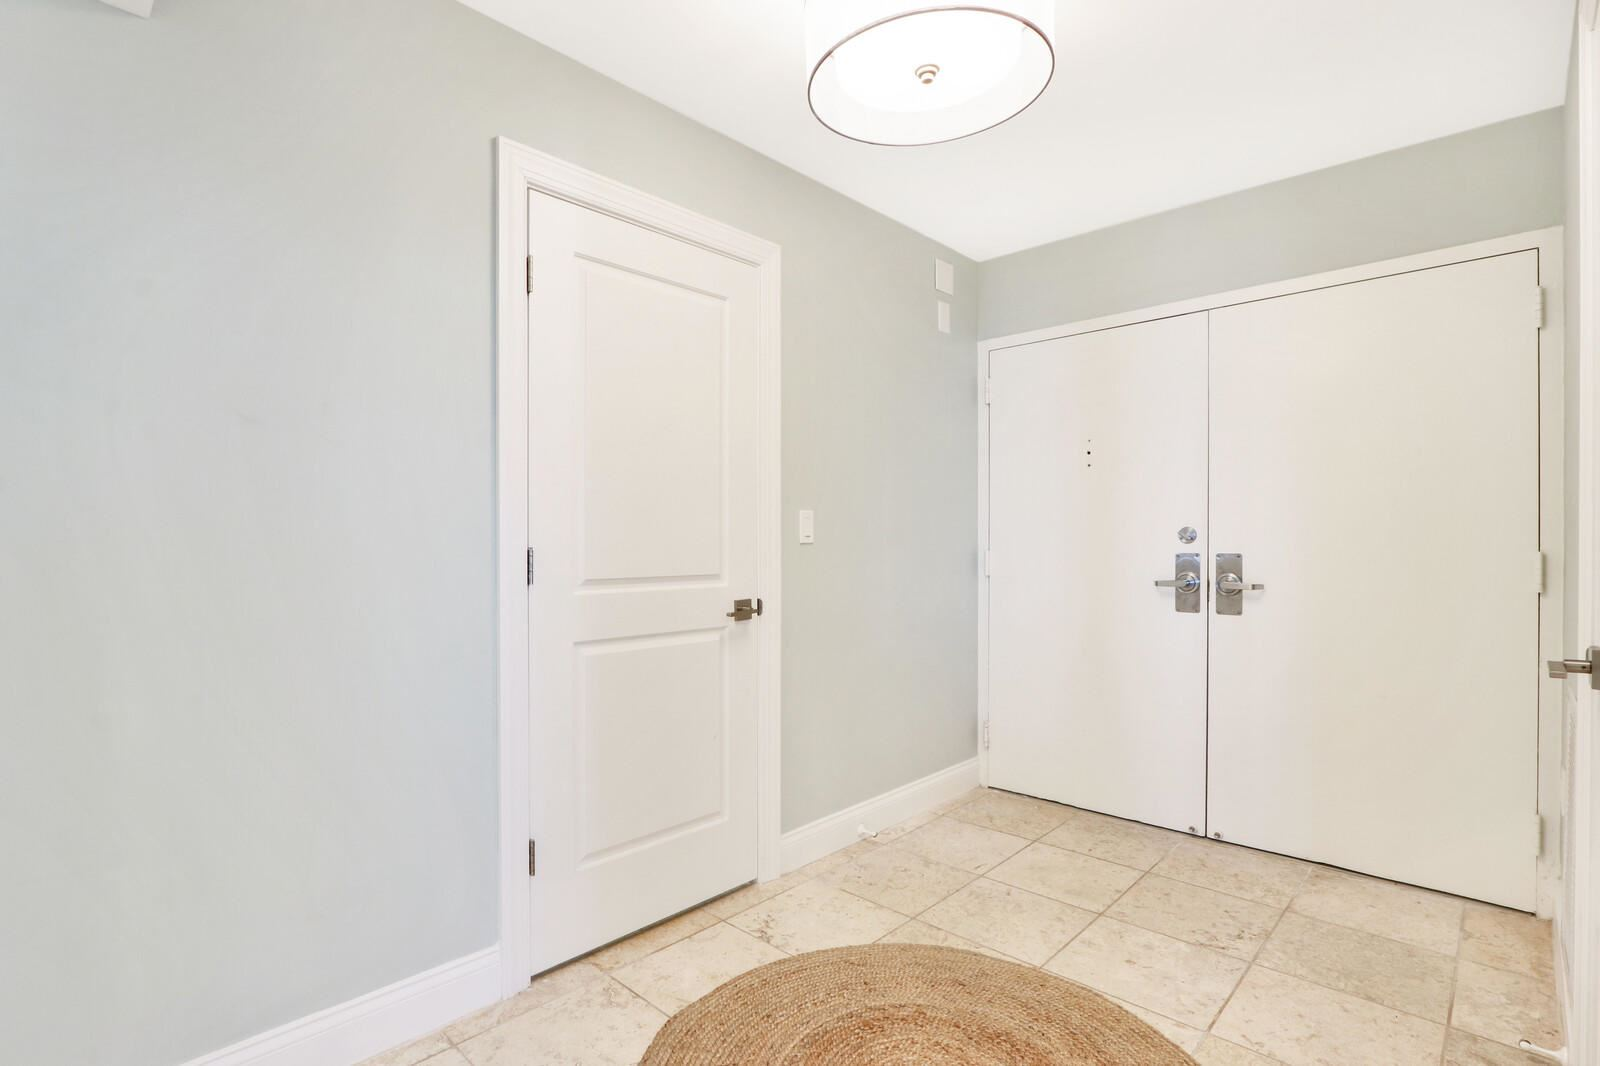 Photo of 108 Lakeshore Drive #1039, North Palm Beach, FL 33408 (MLS # RX-10675554)